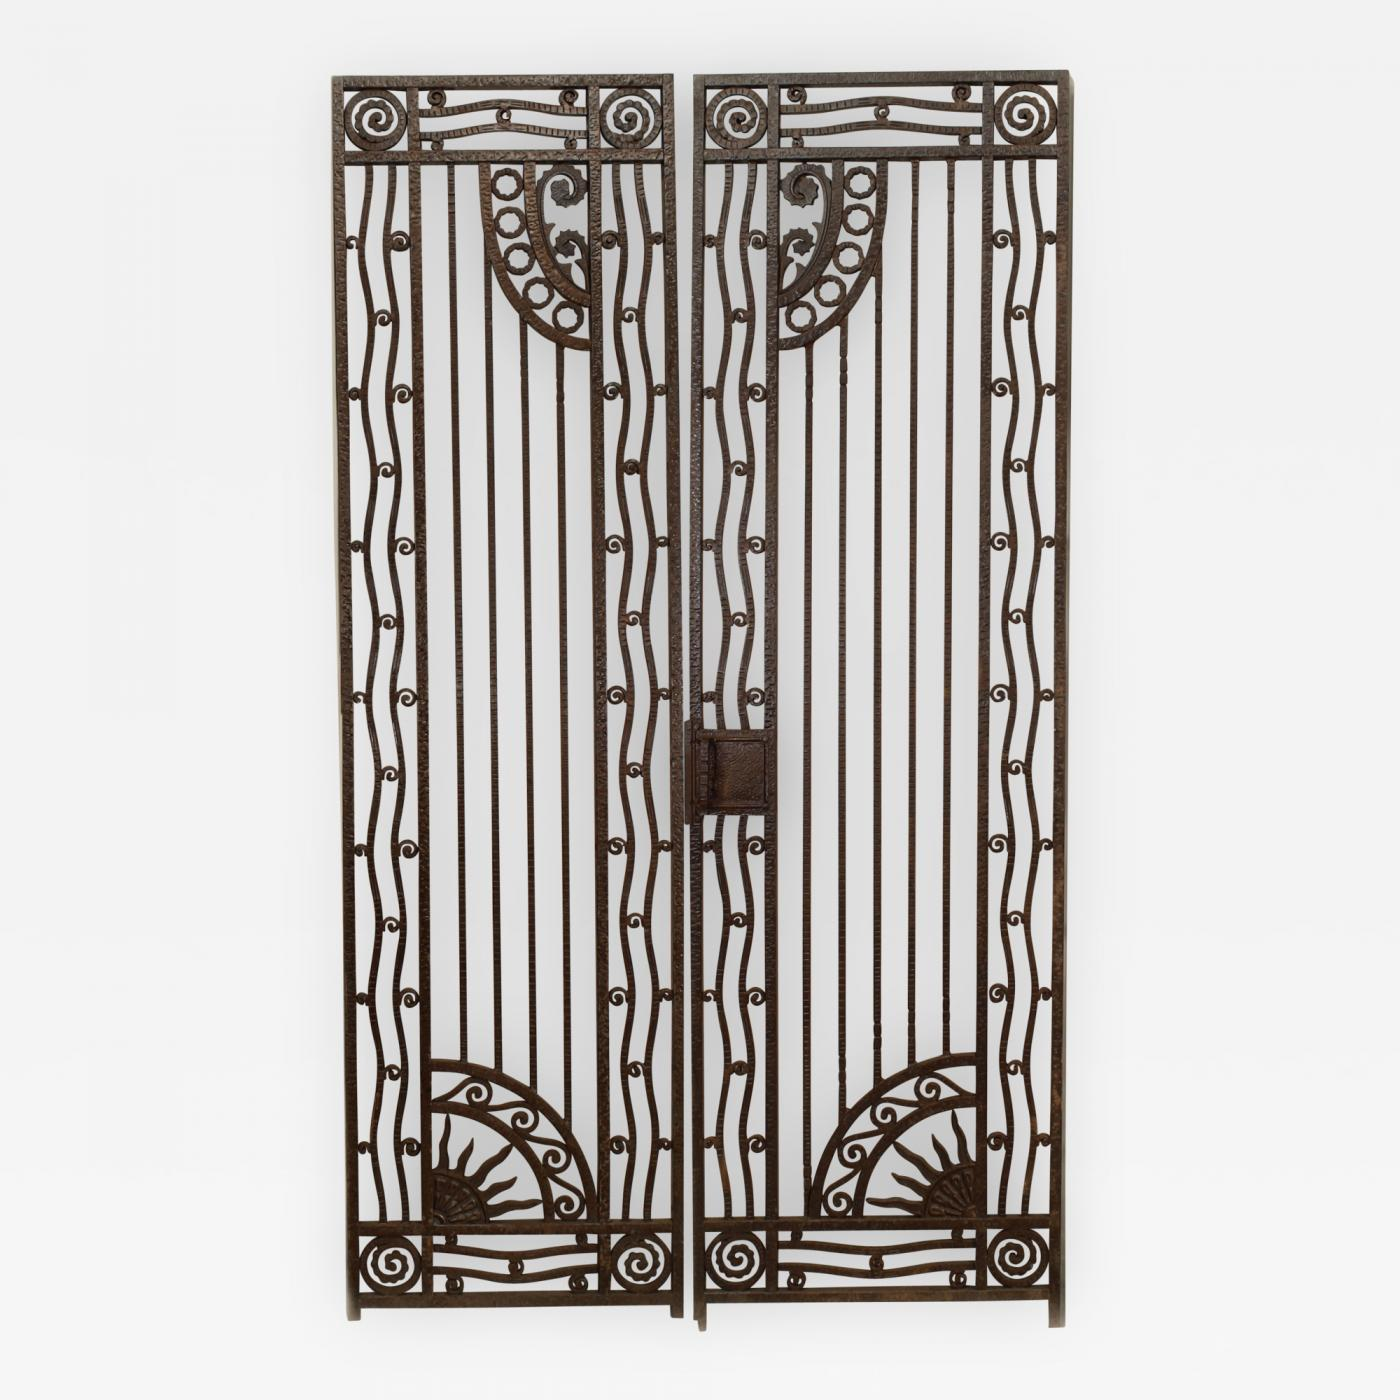 Art Deco Ornamental Ironwork: 2 Pair Of French Art Deco Wrought Iron Gates